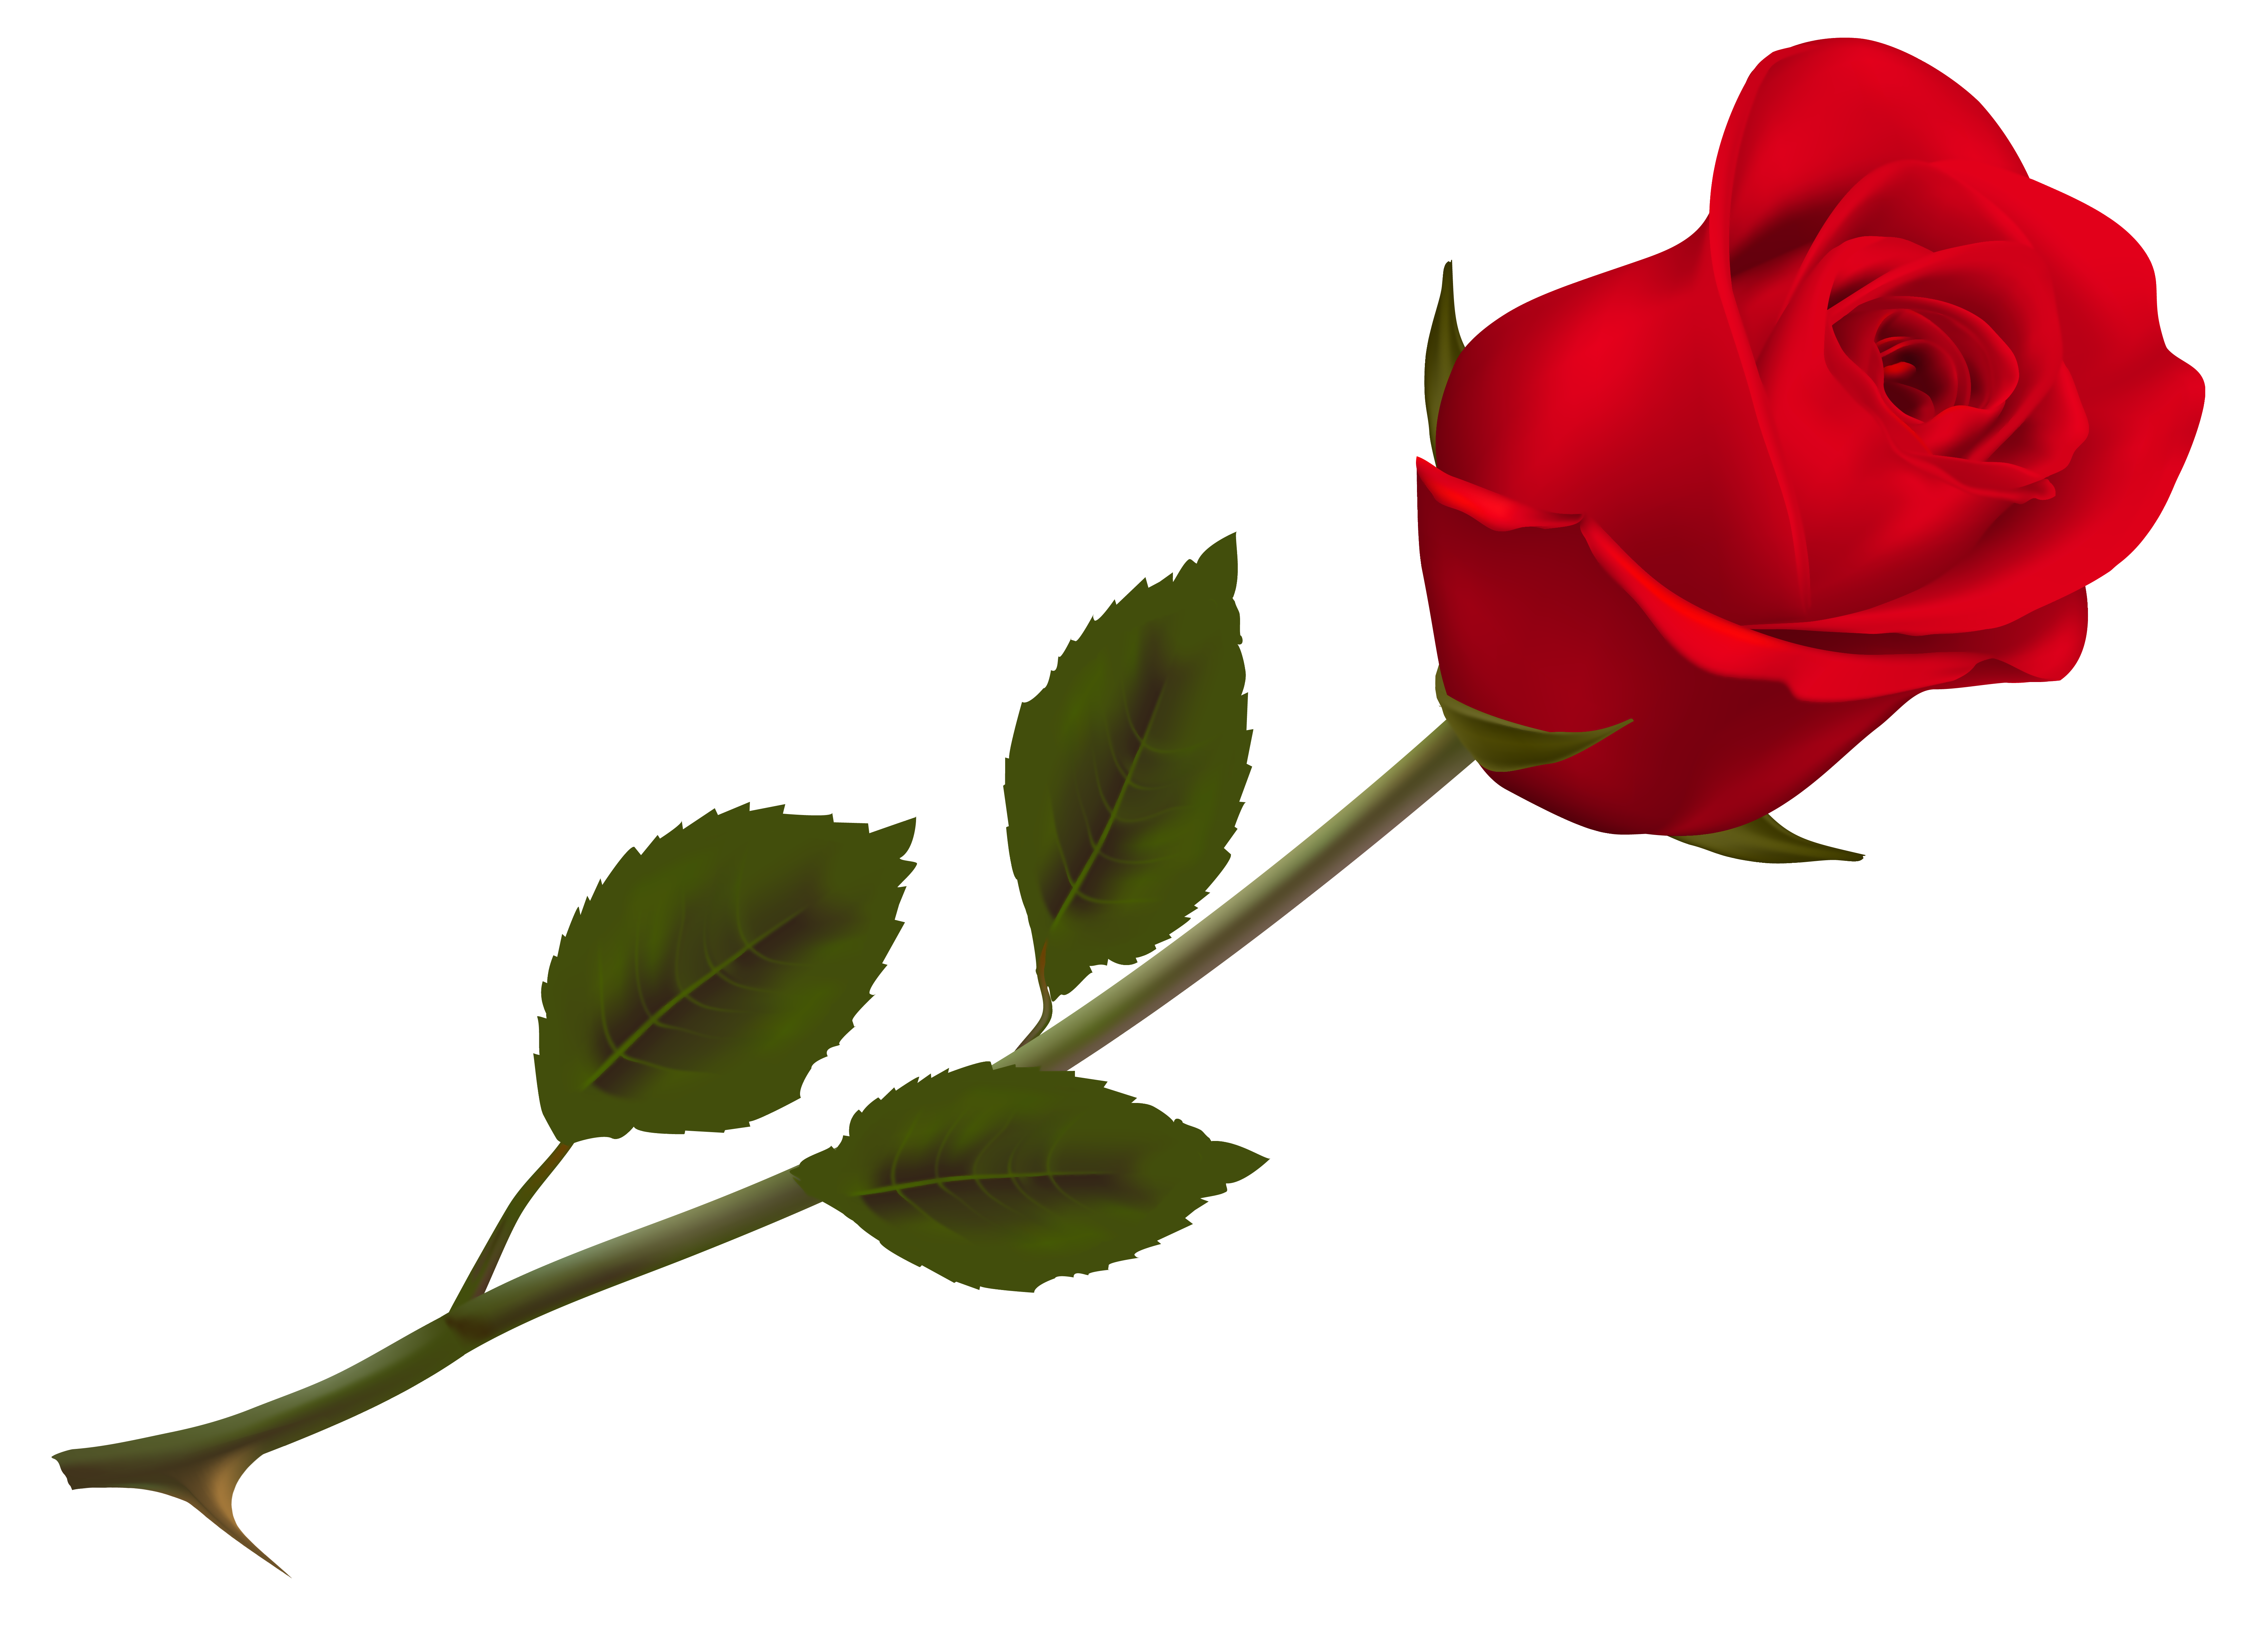 Desert rose png. Transparent beautiful red picture